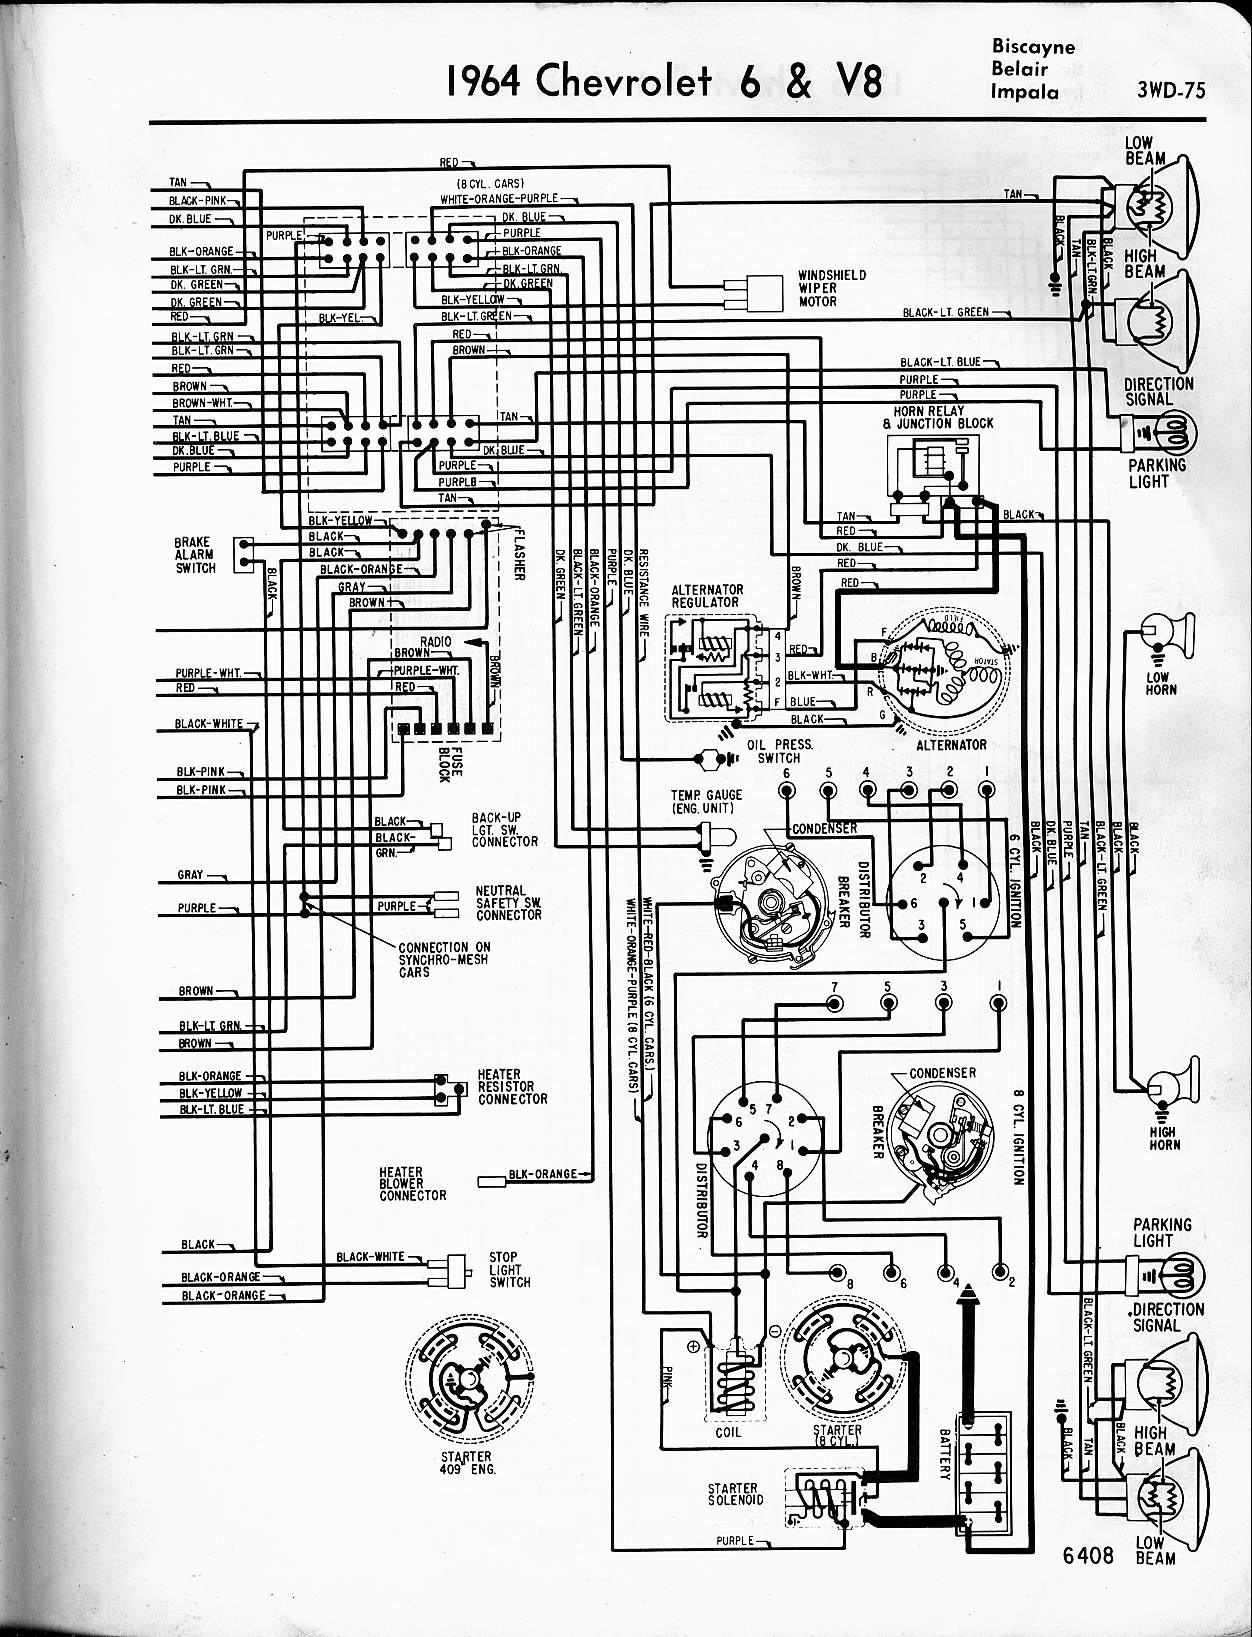 1964 Impala Starting Diagram Diy Wiring Diagrams Kubota F2400 64 Starter U2022 Rh Tinyforge Co Dash